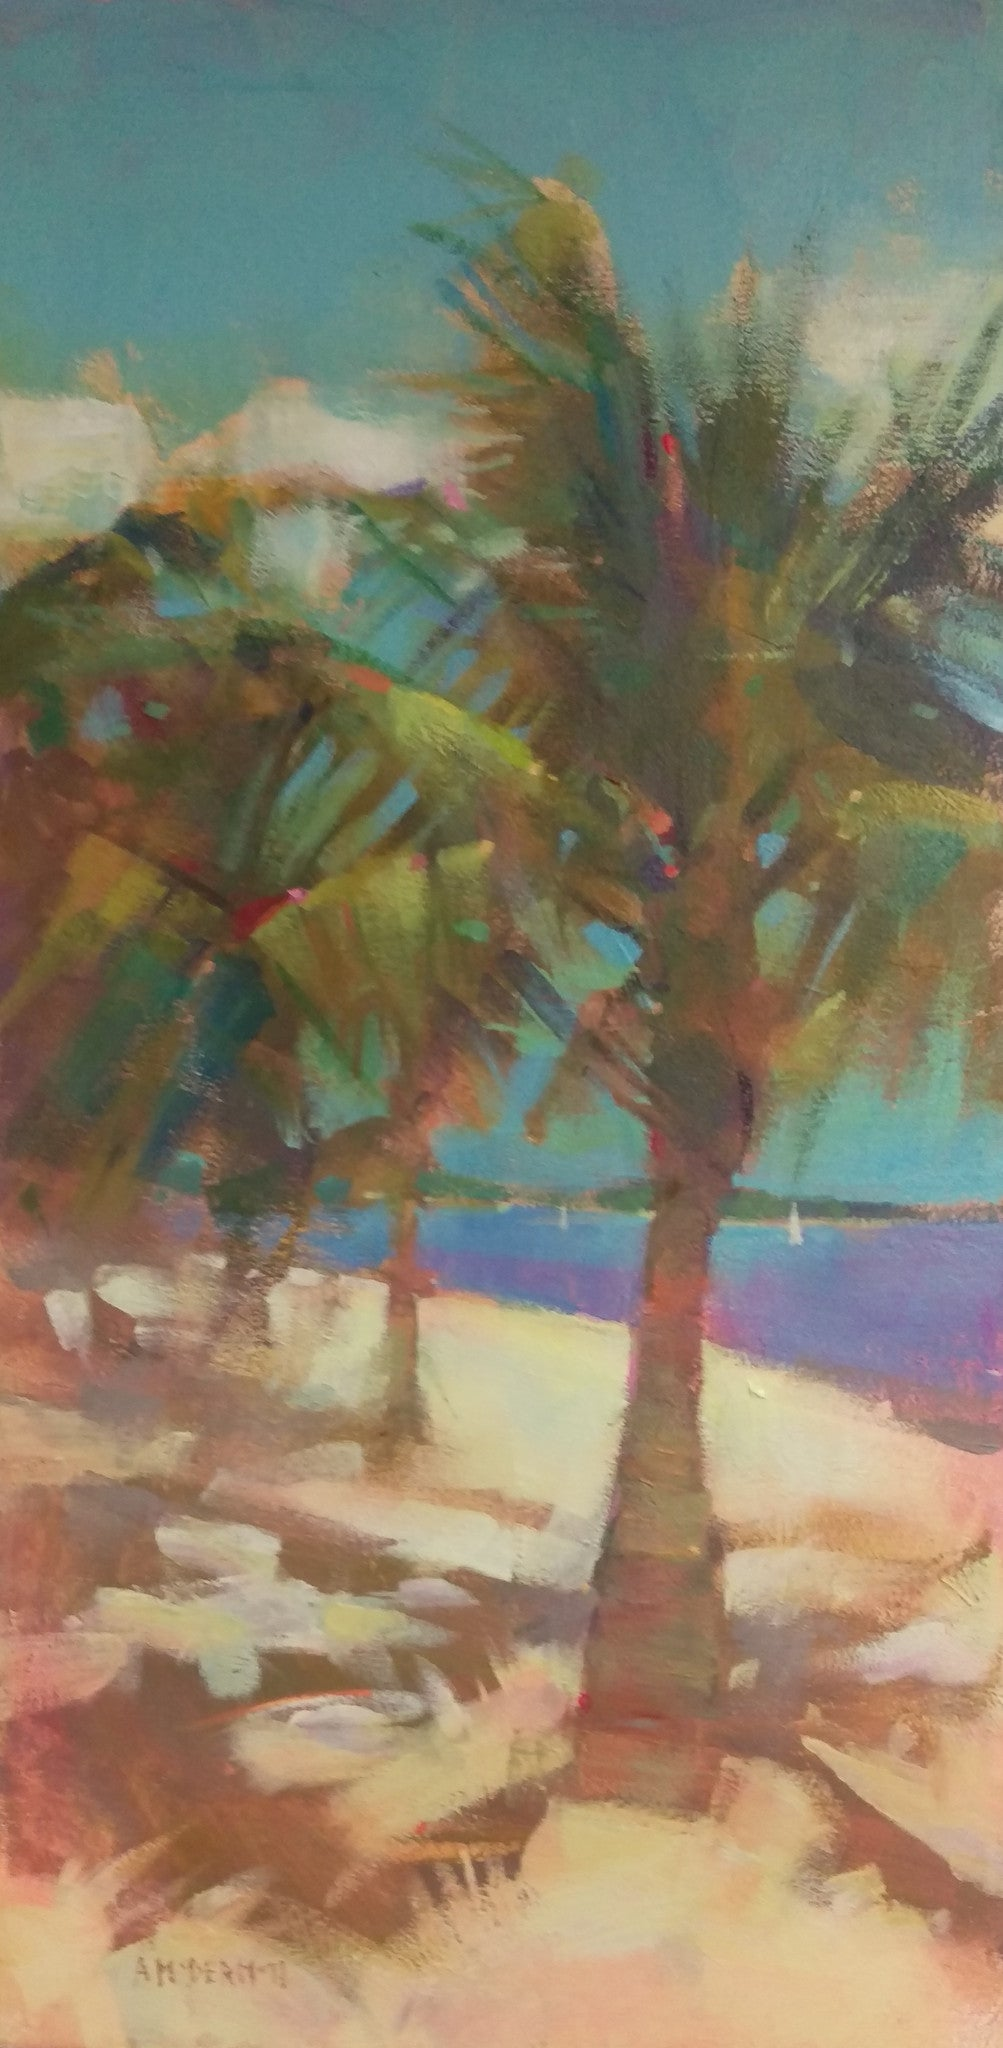 Palm Trees by Andrew McDermott